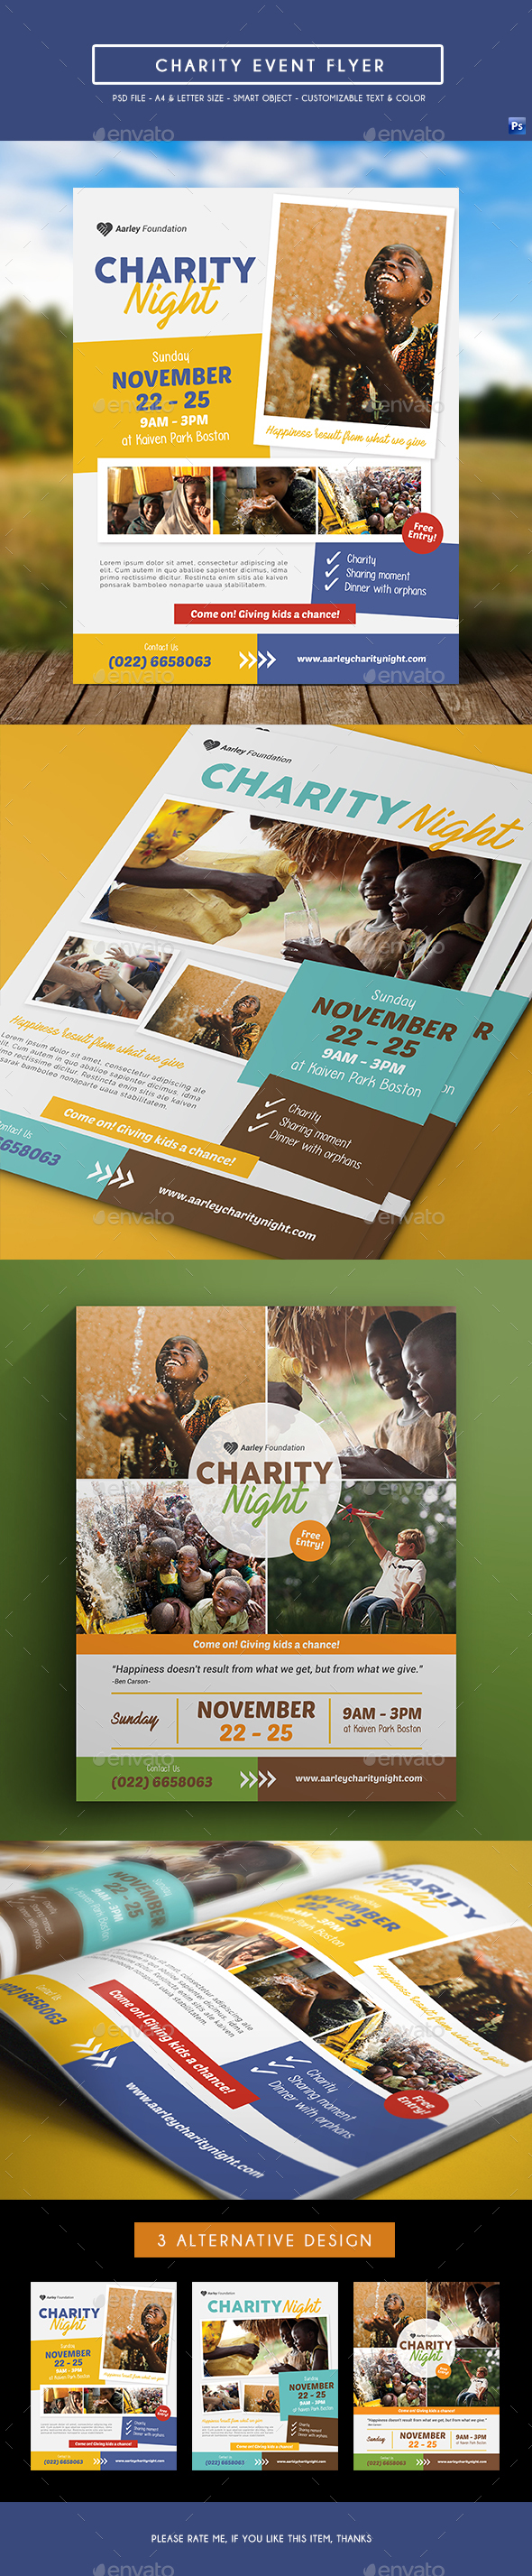 Charity Event Flyer - Events Flyers